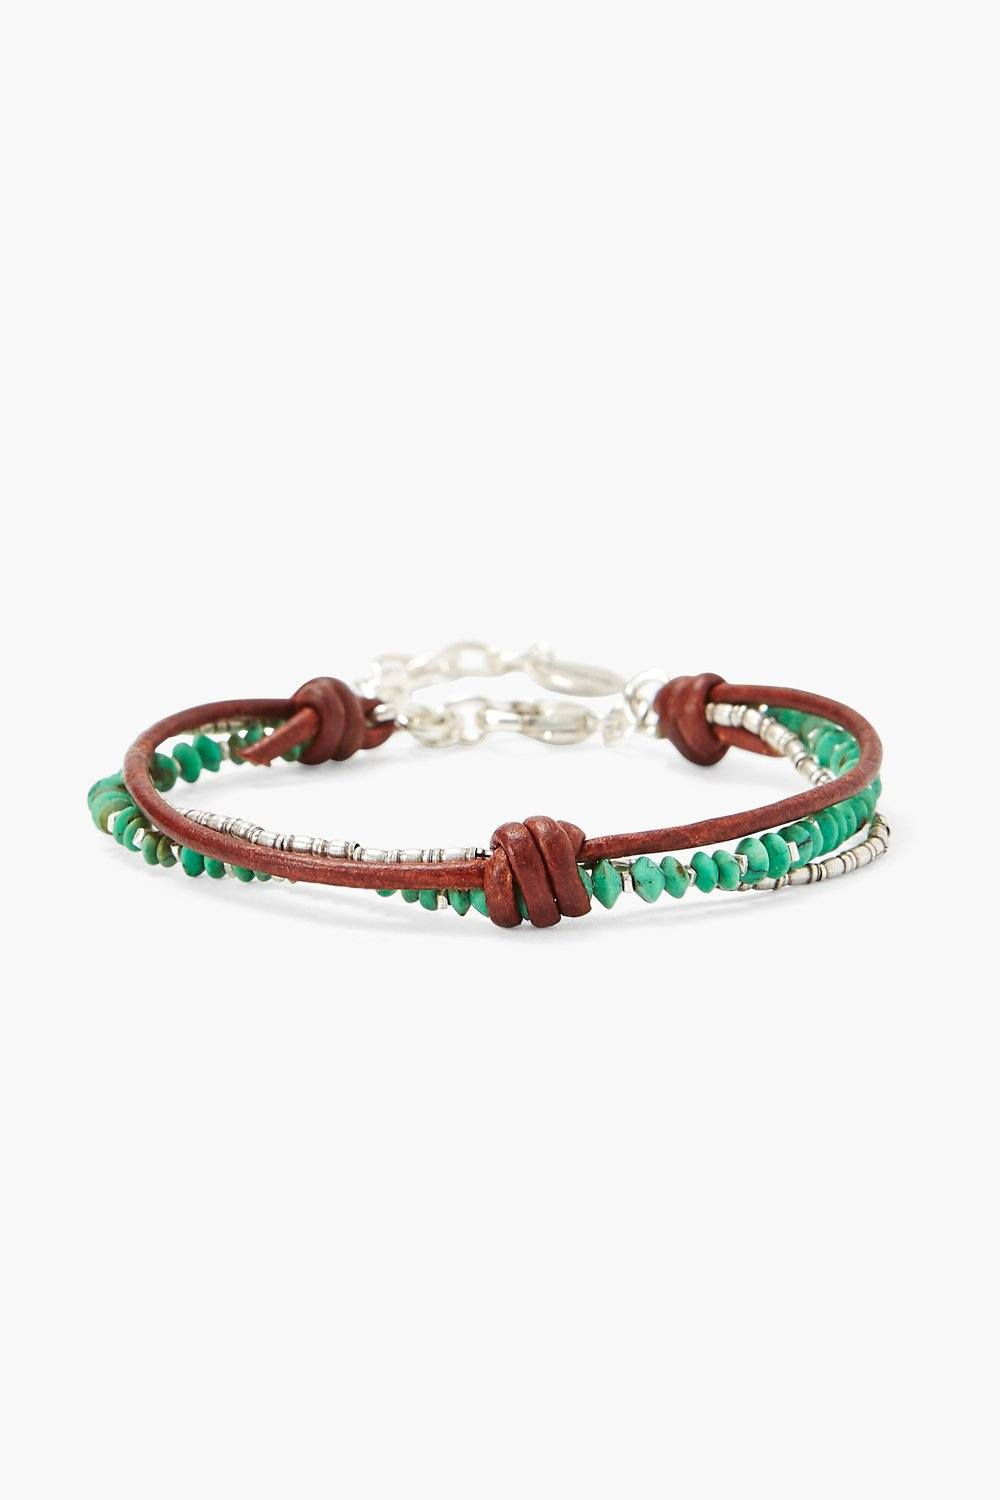 Green Turquoise and Silver Bead Bracelet